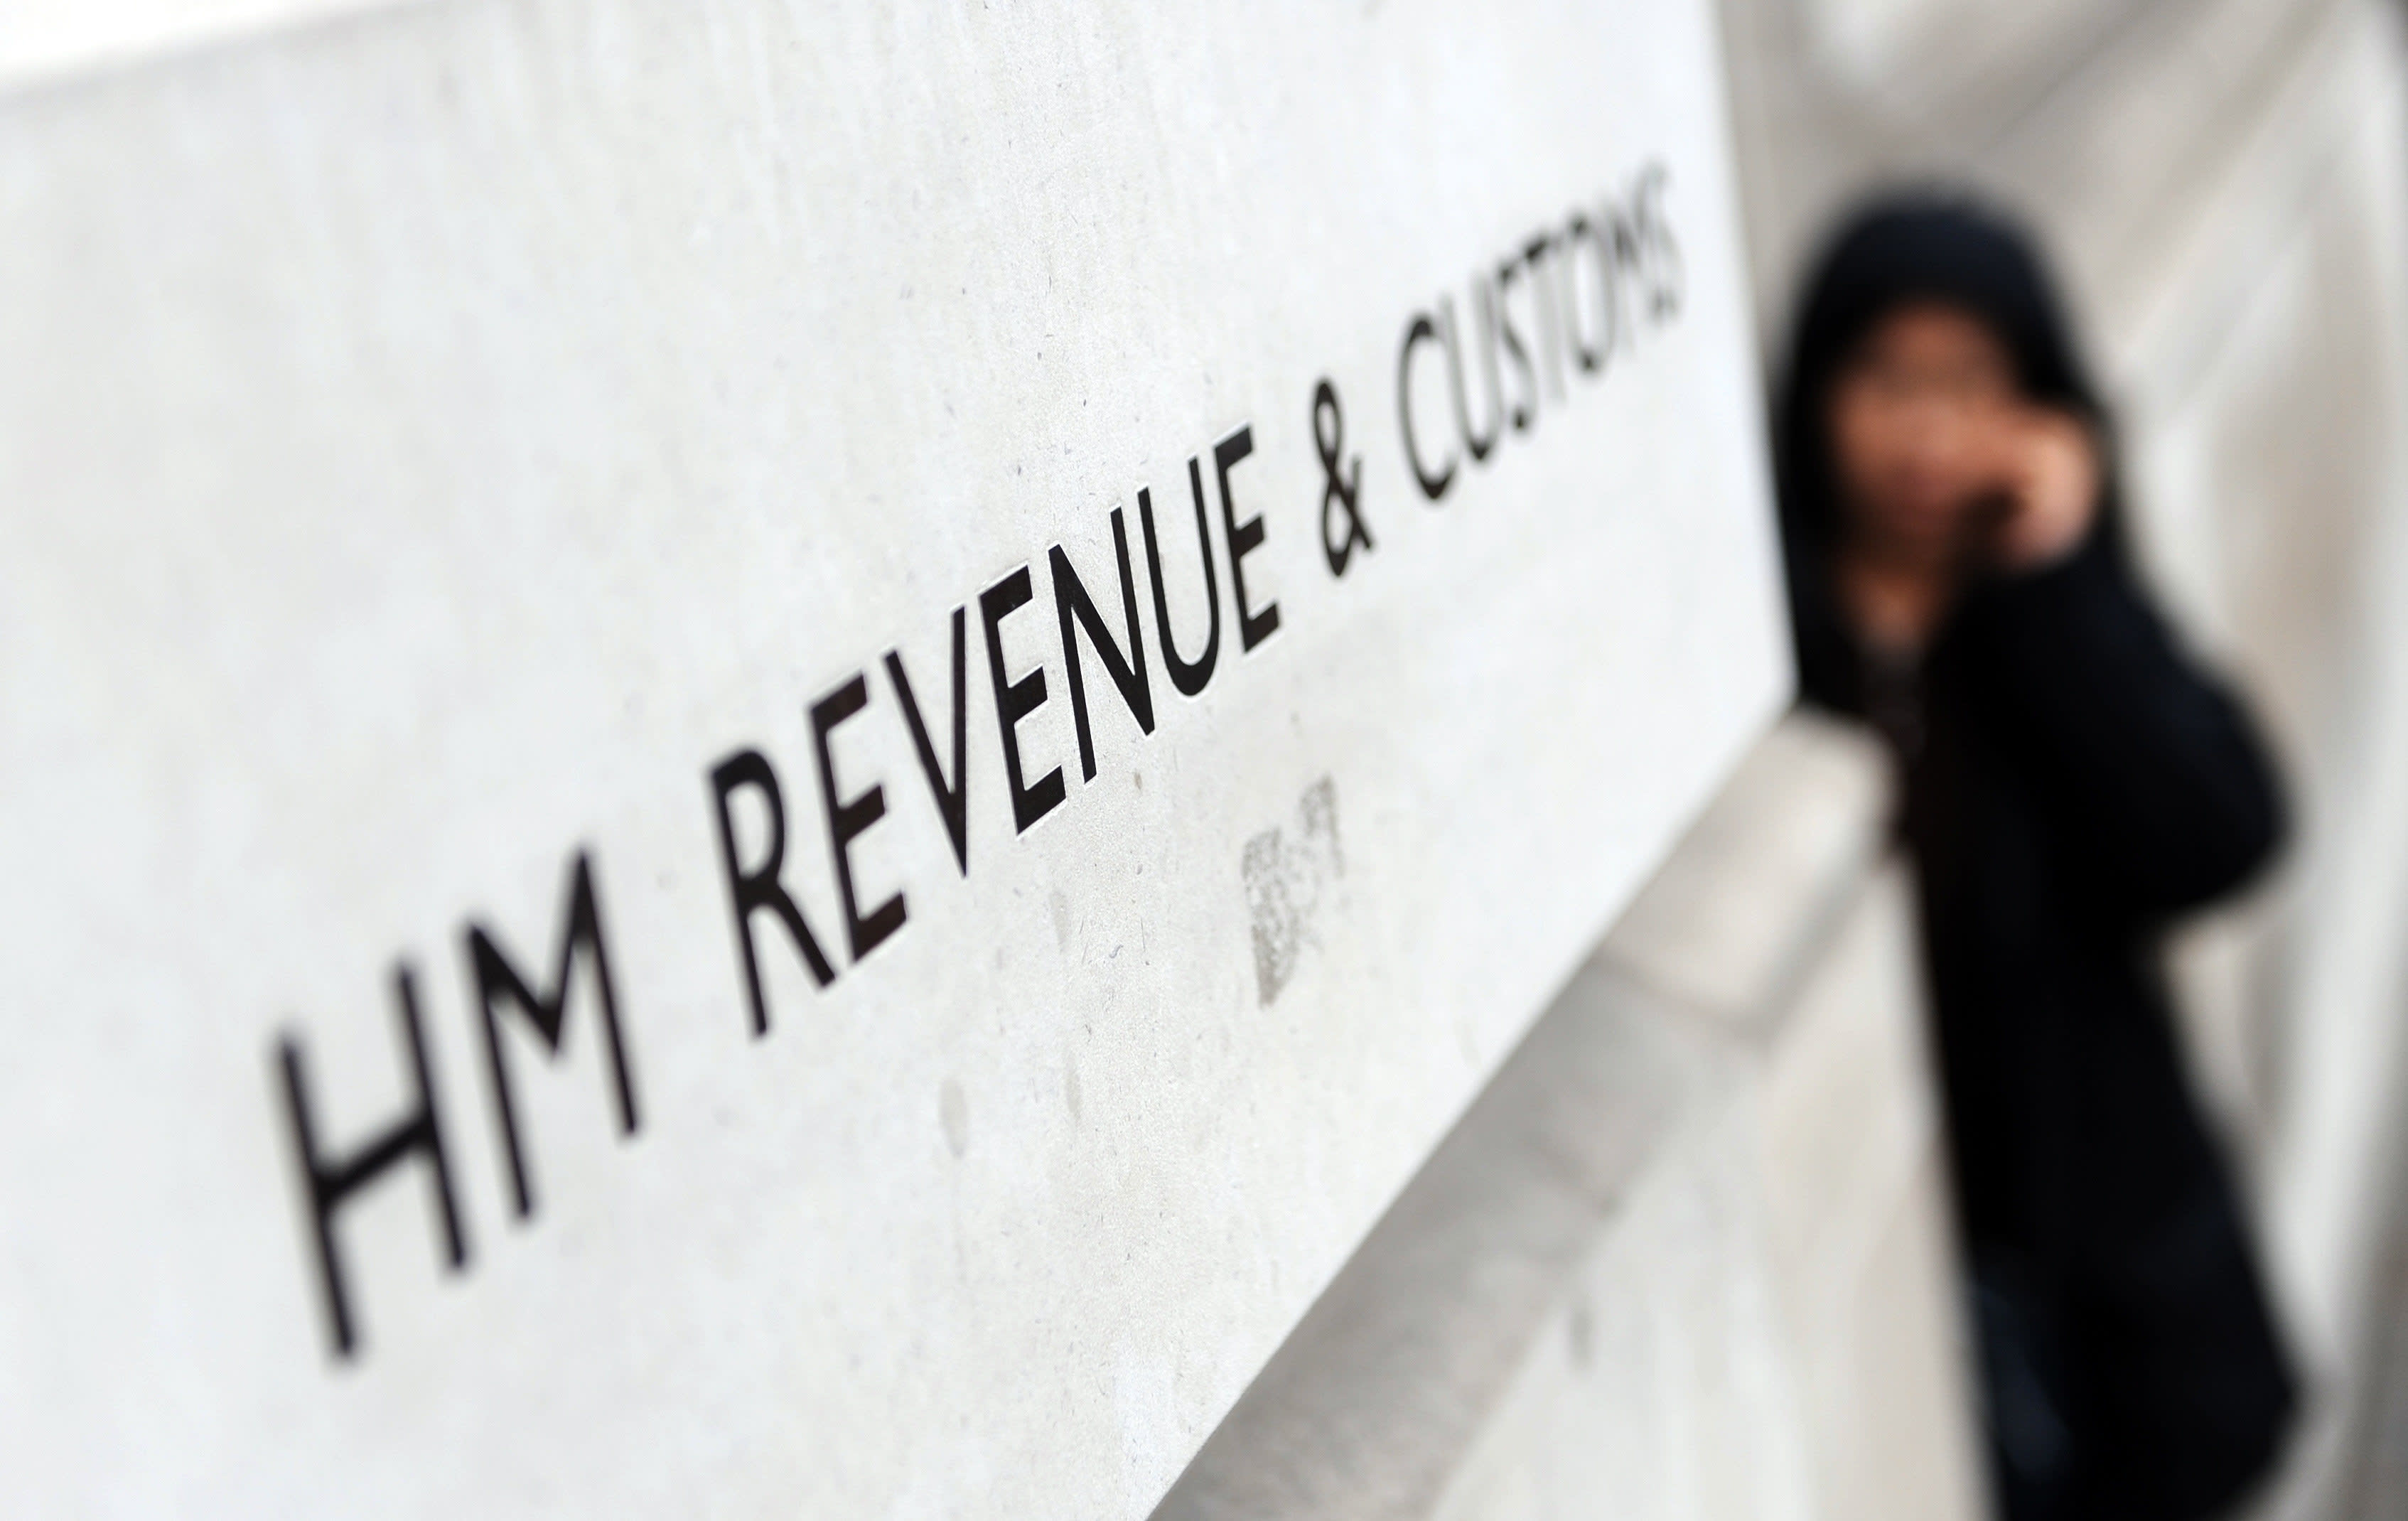 HMRC extends appeals deadline amid Covid-19